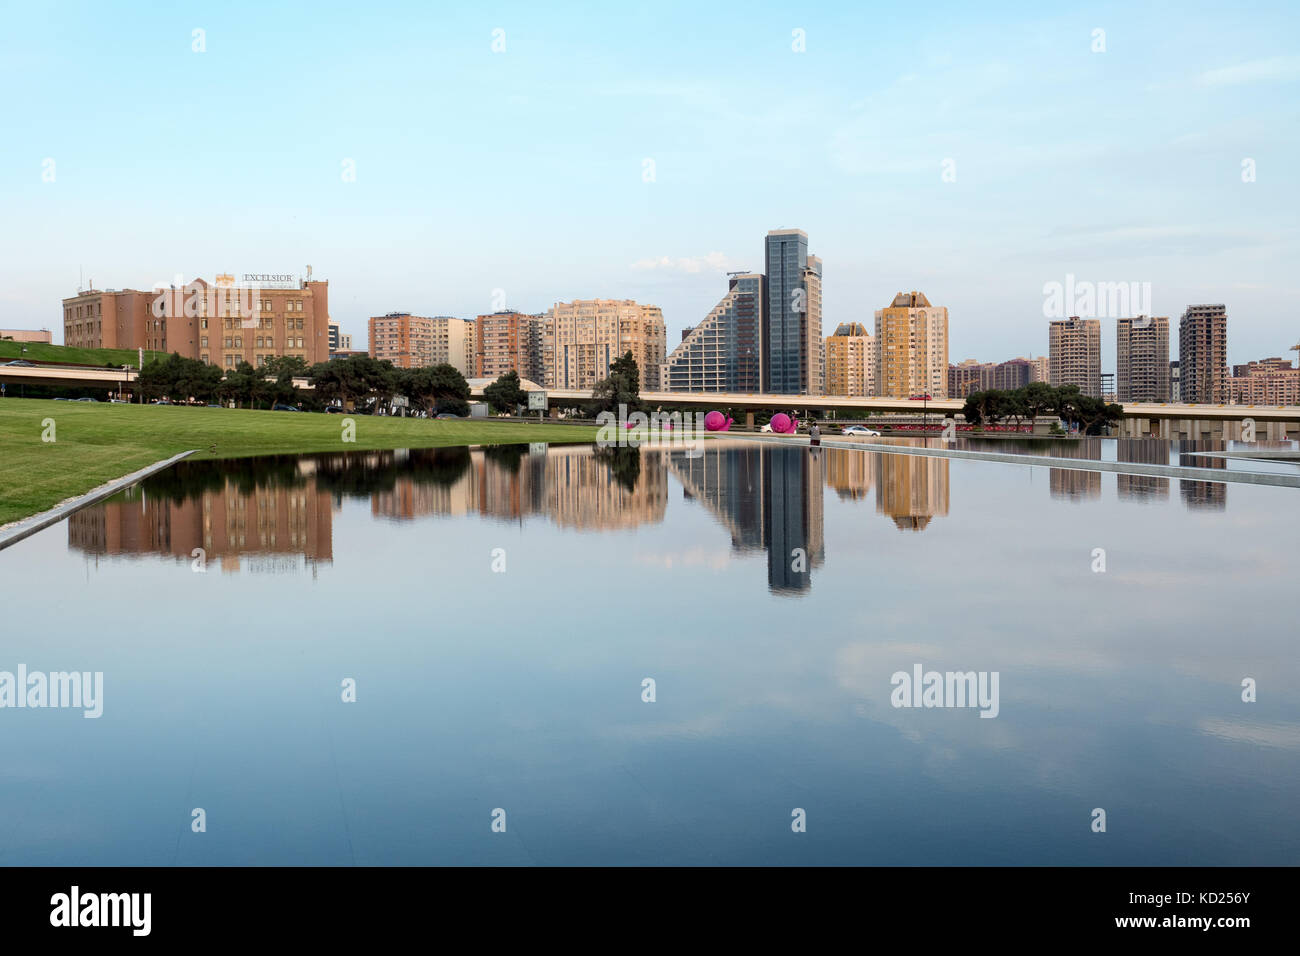 Baku, Azerbaijan - May 19, 2017 : city skyline reflected in a lake, modern architecture - Stock Image